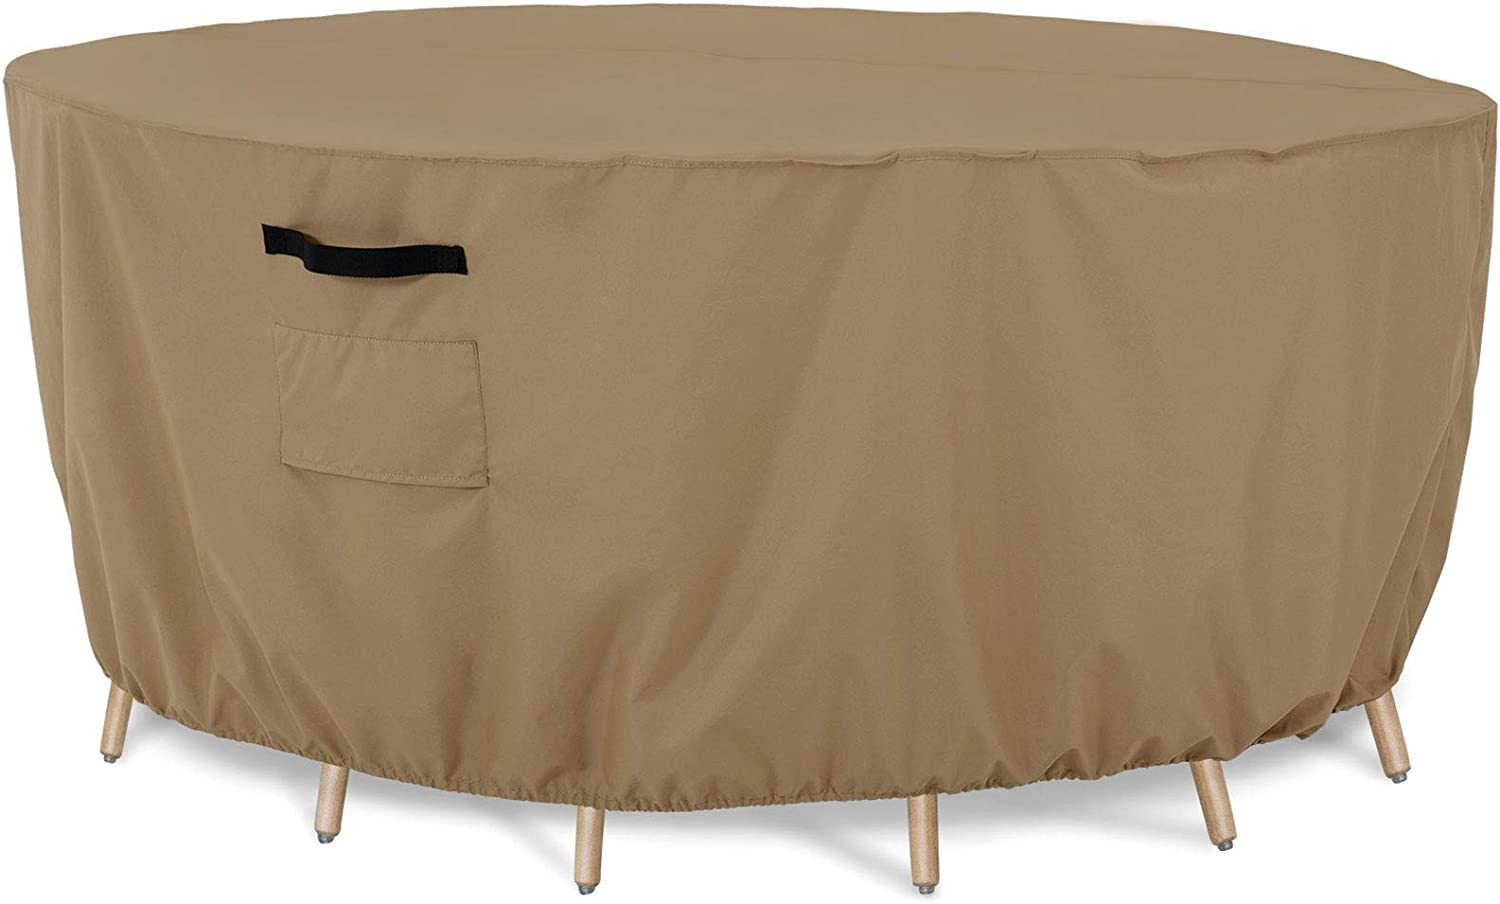 Tempera Round Patio Furniture Cover, Outdoor Table, Sectioal Sofa Set Cover, Tear Resistant, Anti-UV Outside Table Cover Waterproof, Taupe, 72 inches Diameter